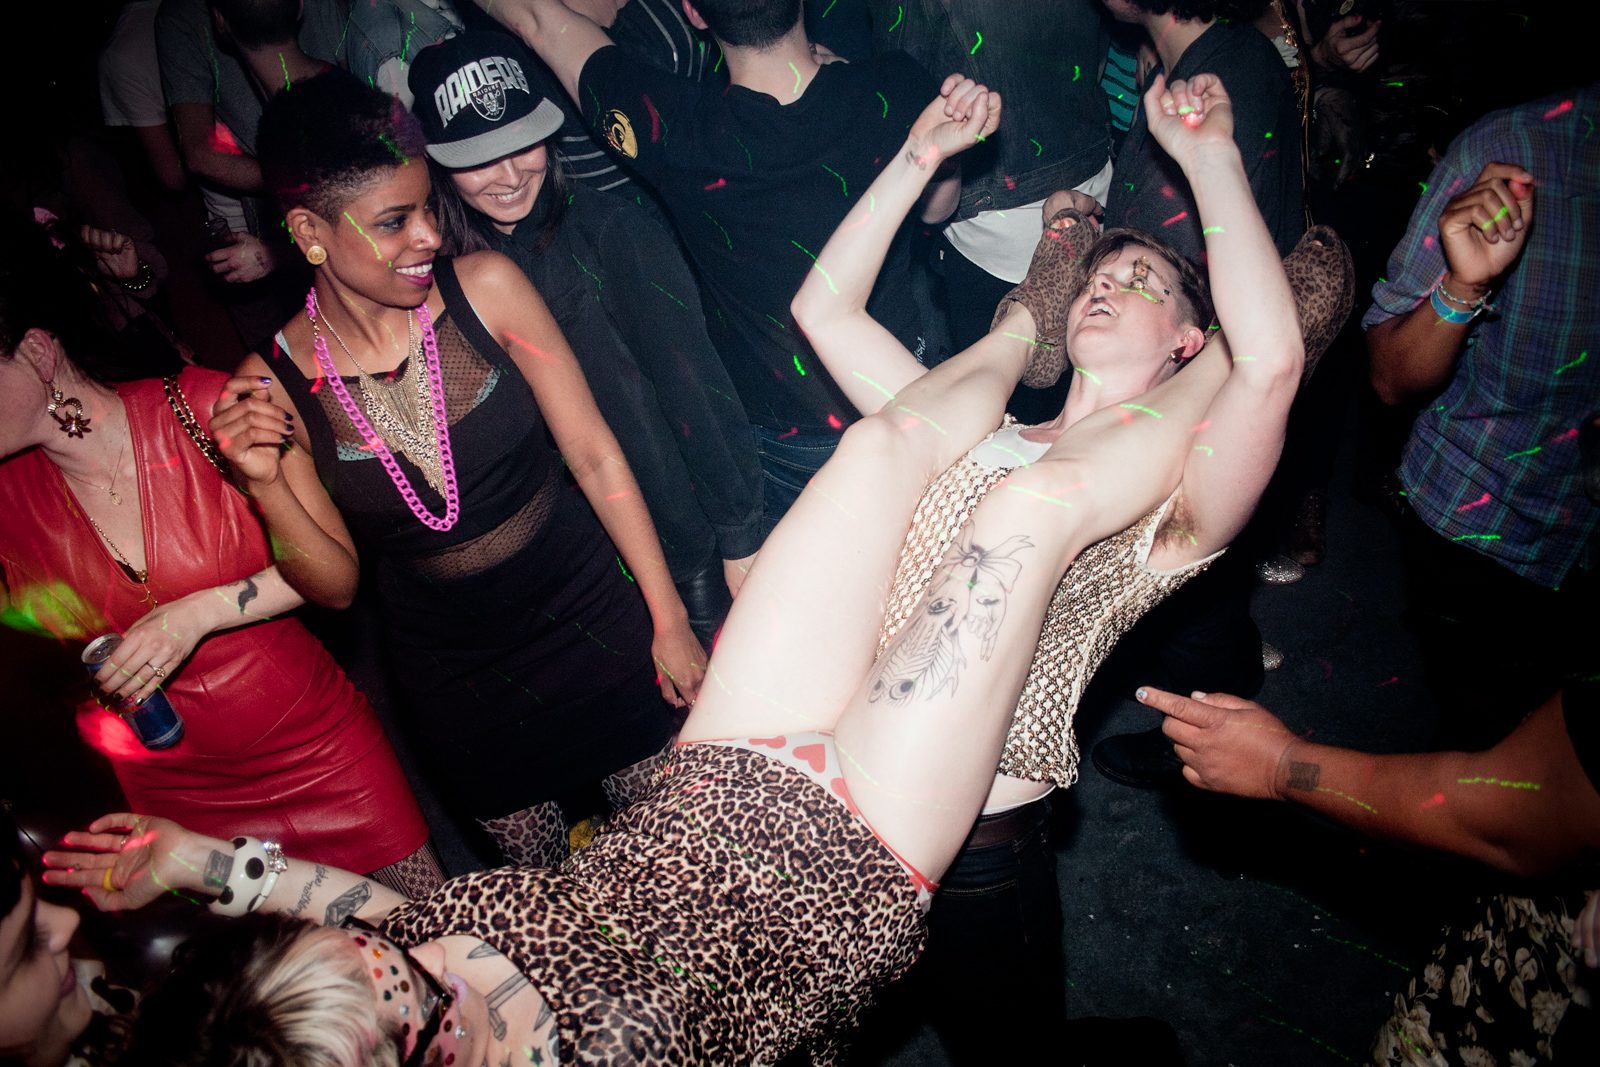 NYC Club-Photo Bex Wade-18.jpg